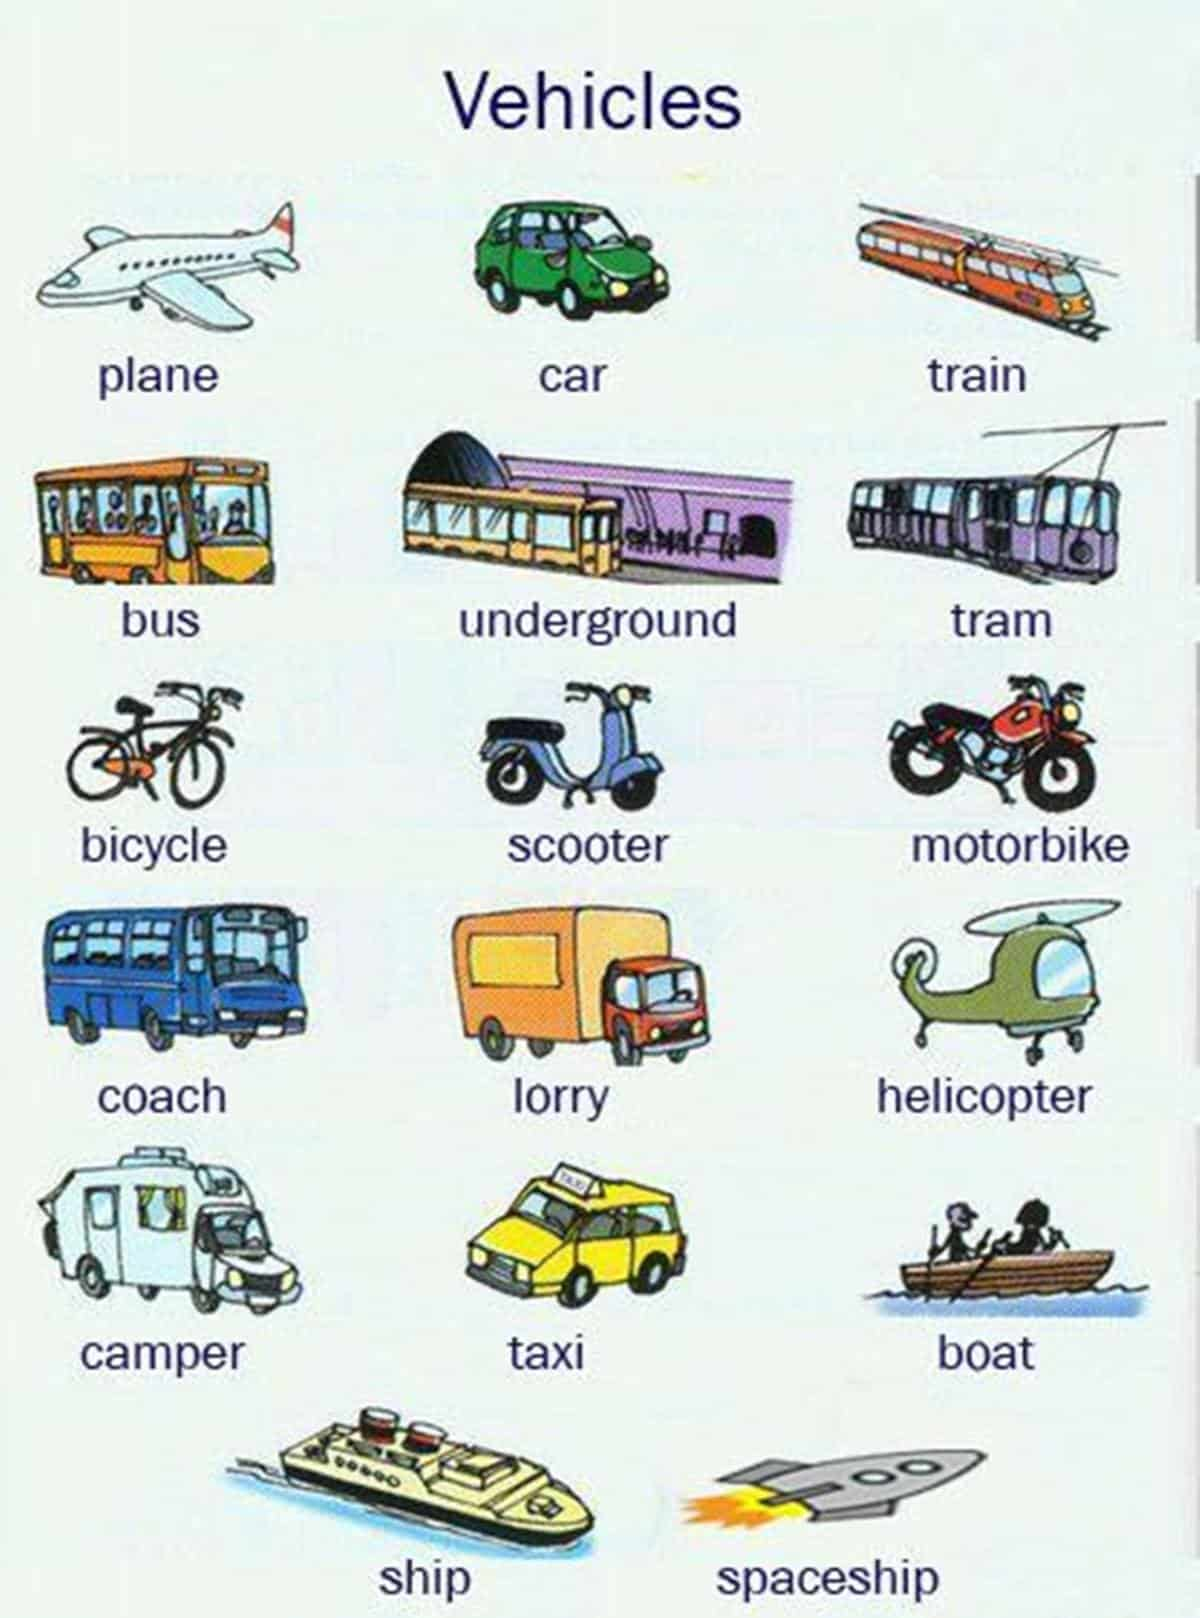 Street Vehicles and Transportation Vocabulary in English 3